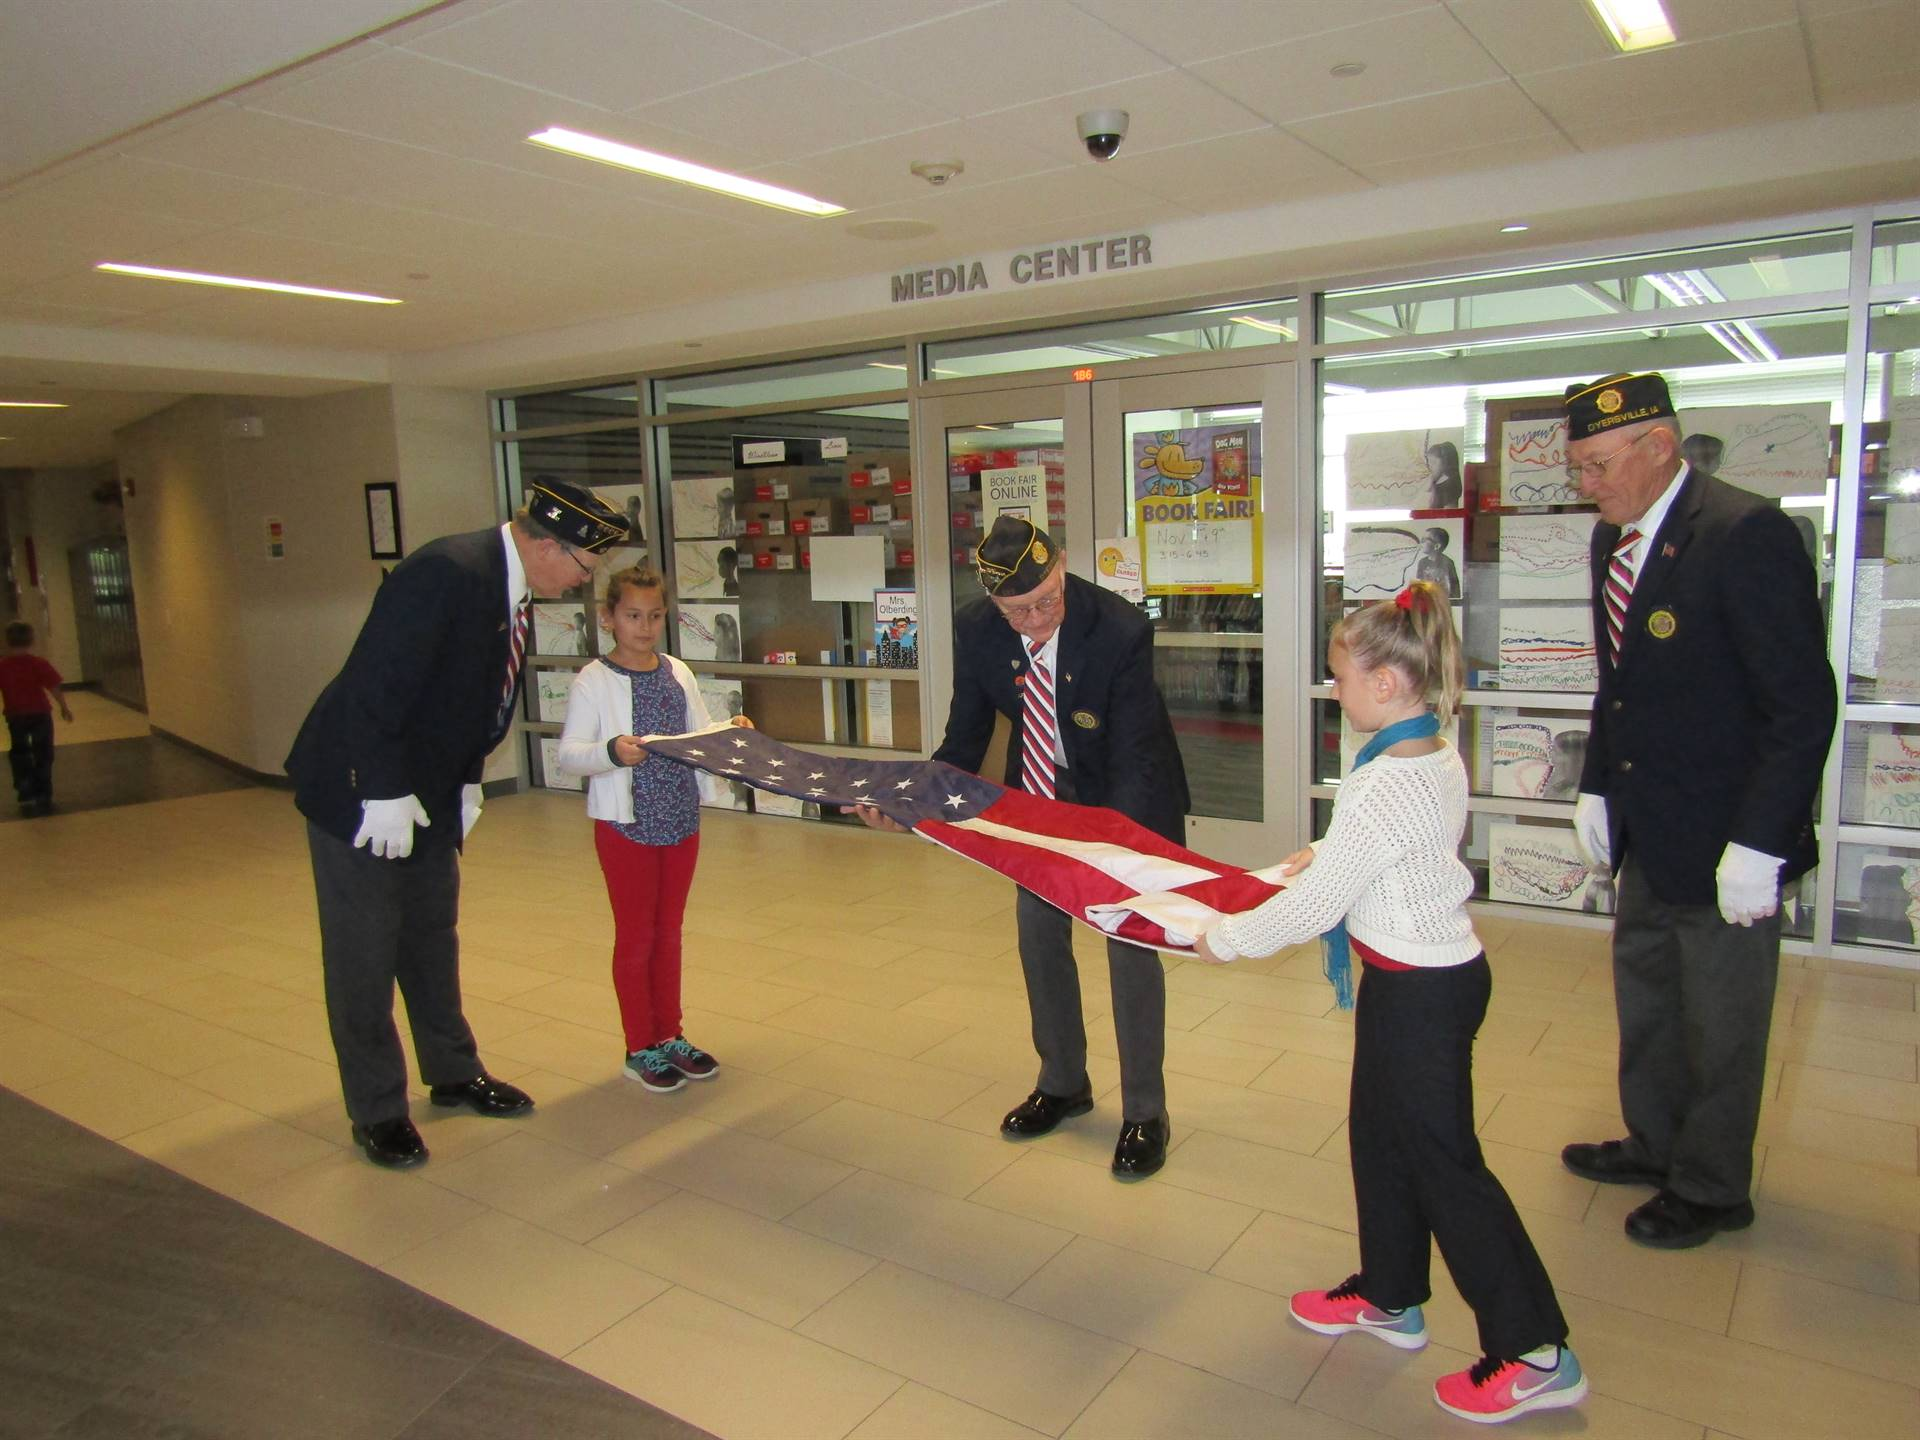 Flag folding with help from Veterans.